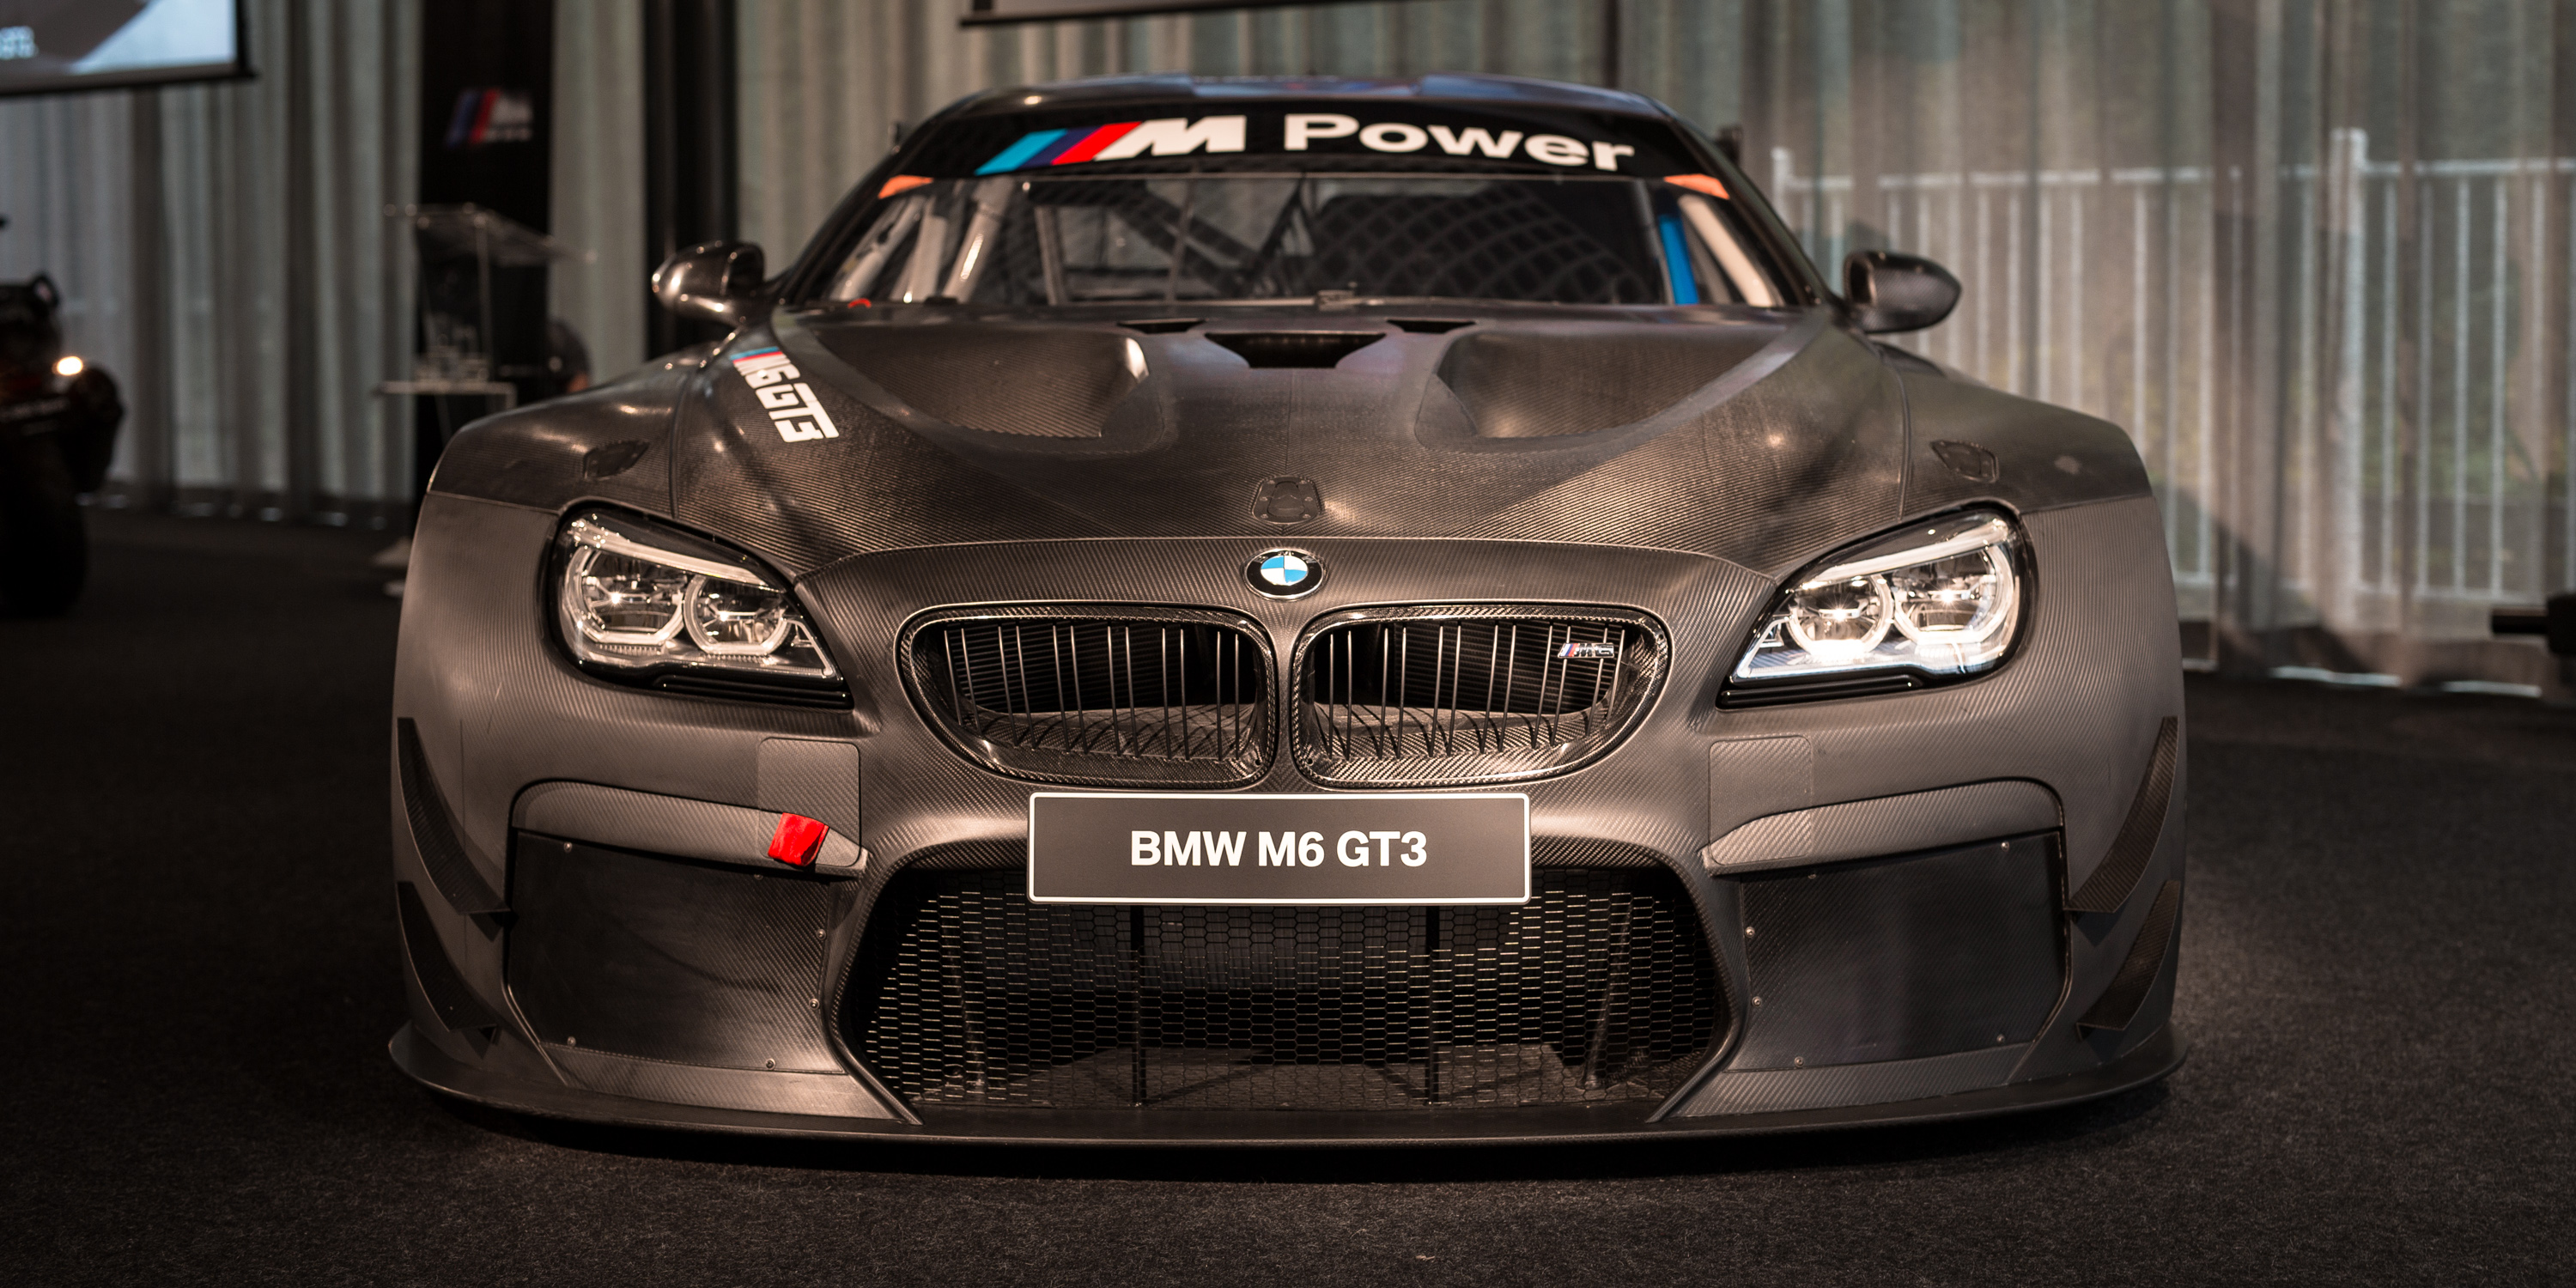 2016 bmw m6 gt3 twin turbo racer unveiled in melbourne. Black Bedroom Furniture Sets. Home Design Ideas